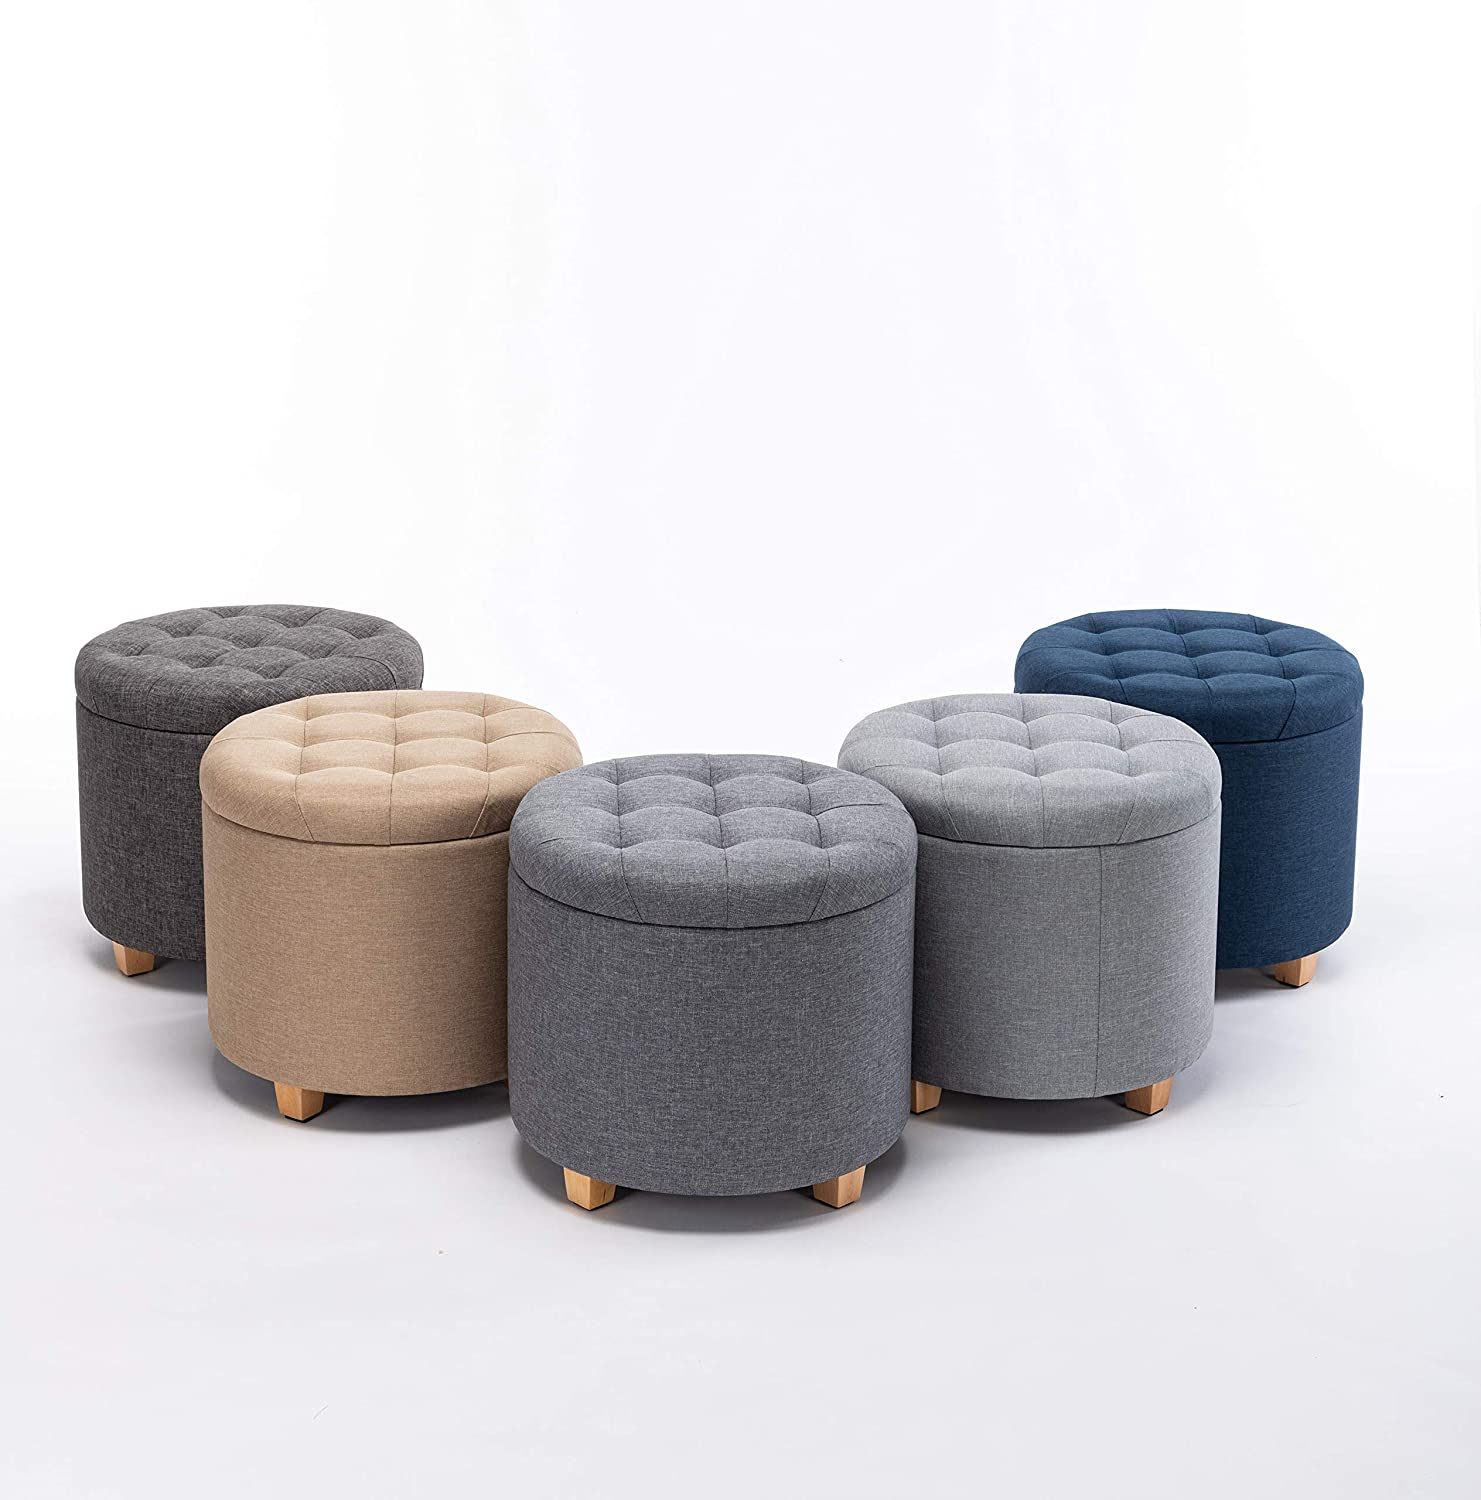 HNNHOME® 45cm Round Linen Padded Seat Ottoman Storage Stool Box, Footstool Pouffes Chair with Lids (Grey) Charcoal